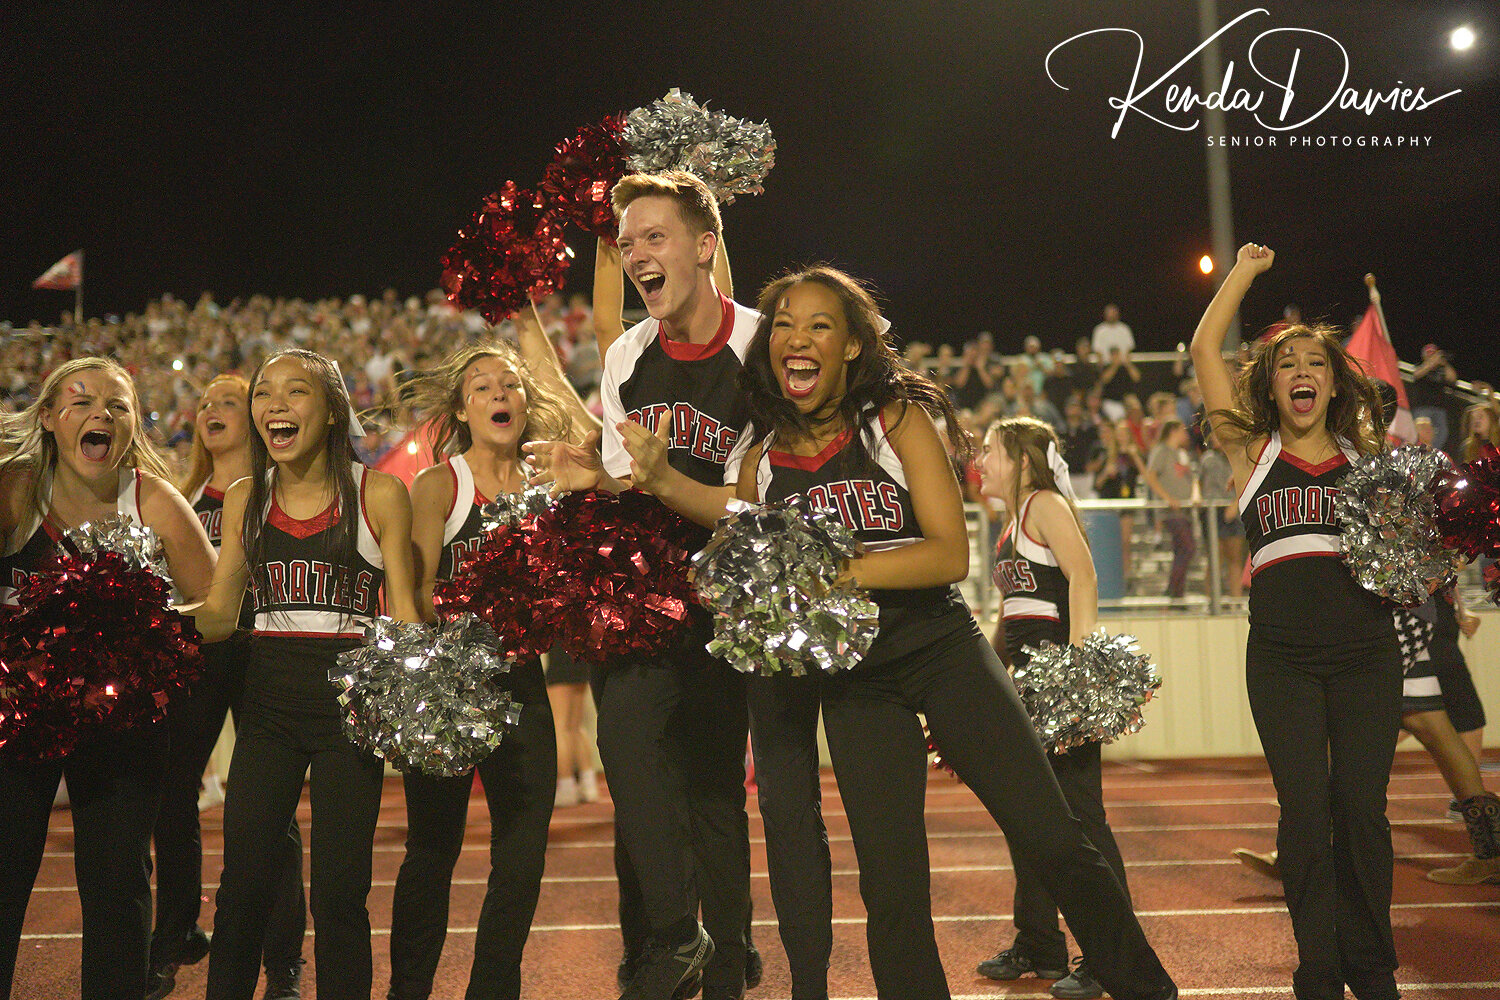 Probably my favorite image taken during the LCP vs FHS game! Elation! Nothing better!